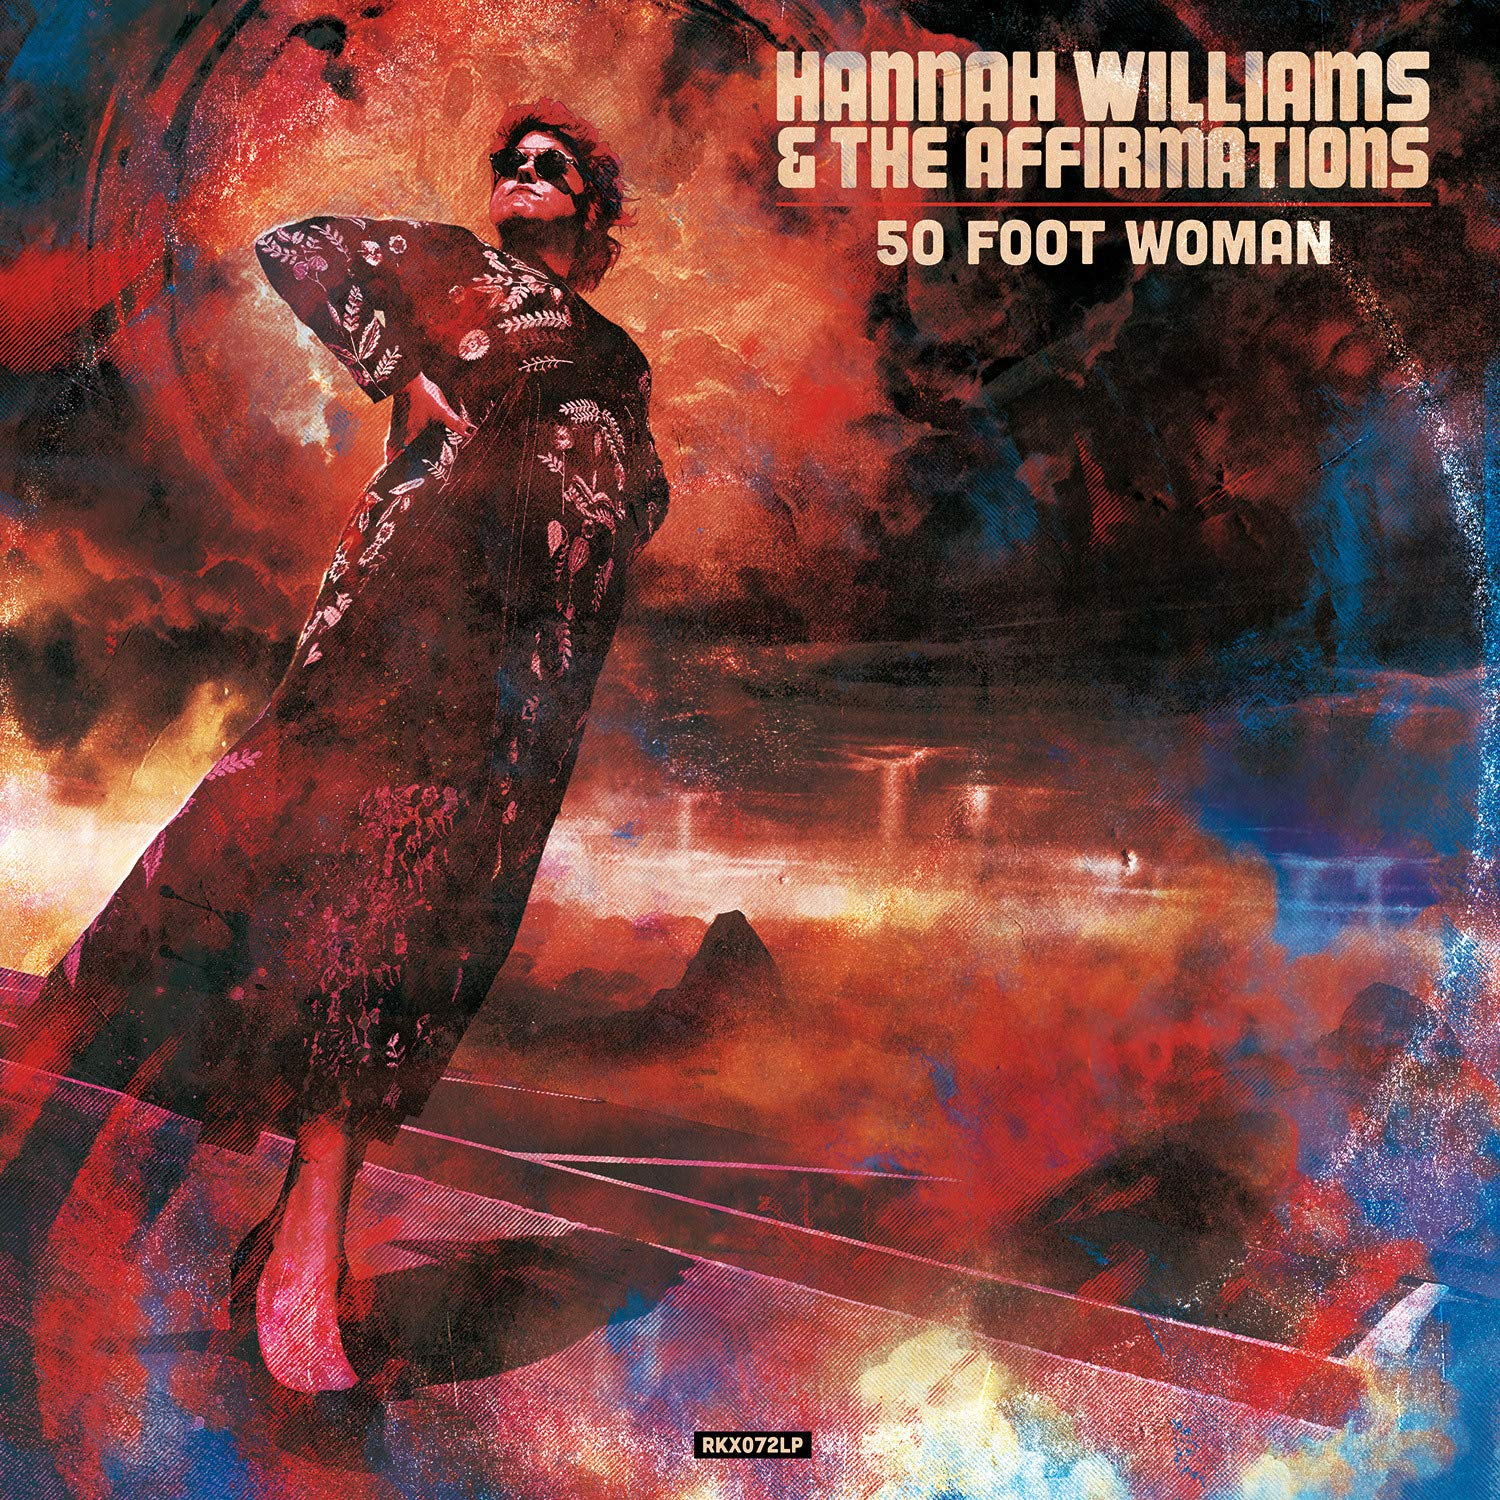 soul funk jay-z critique label review chronique hannah williams, hannah williams and the affirmations record kicks 2019 50 foot woman